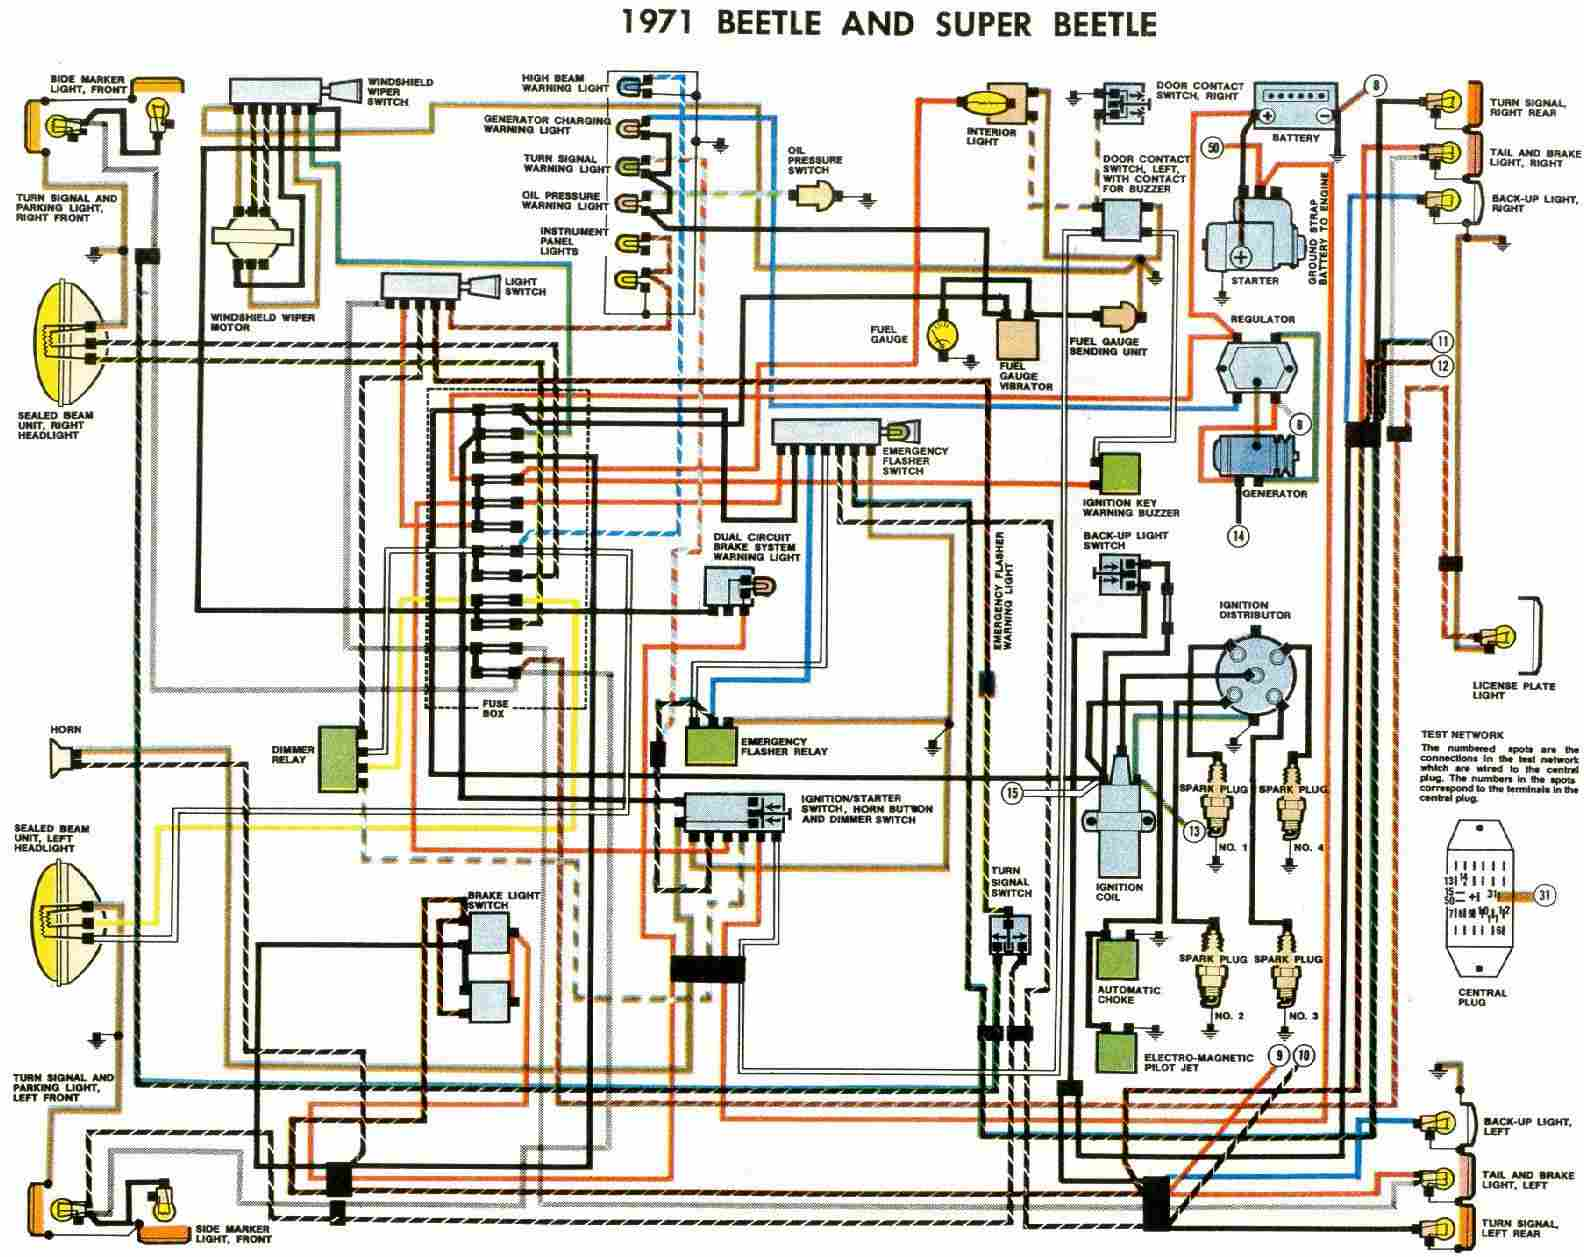 Vw Beetle Wiring Diagram 2000 Jeep Grand Cherokee Limited Stereo And Super 1971 Electrical